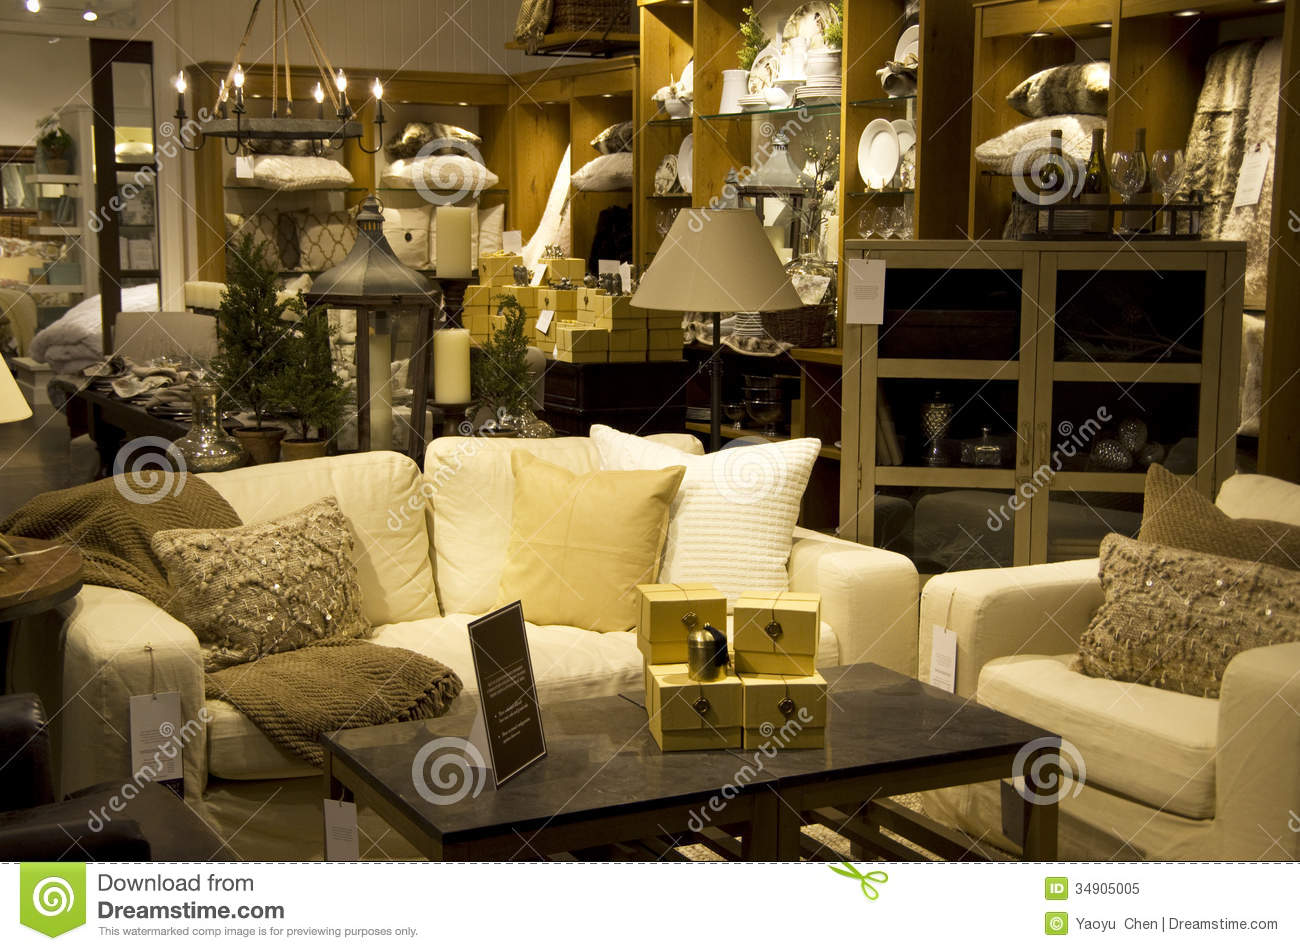 Luxury furniture home decor store stock image image for In home decor store